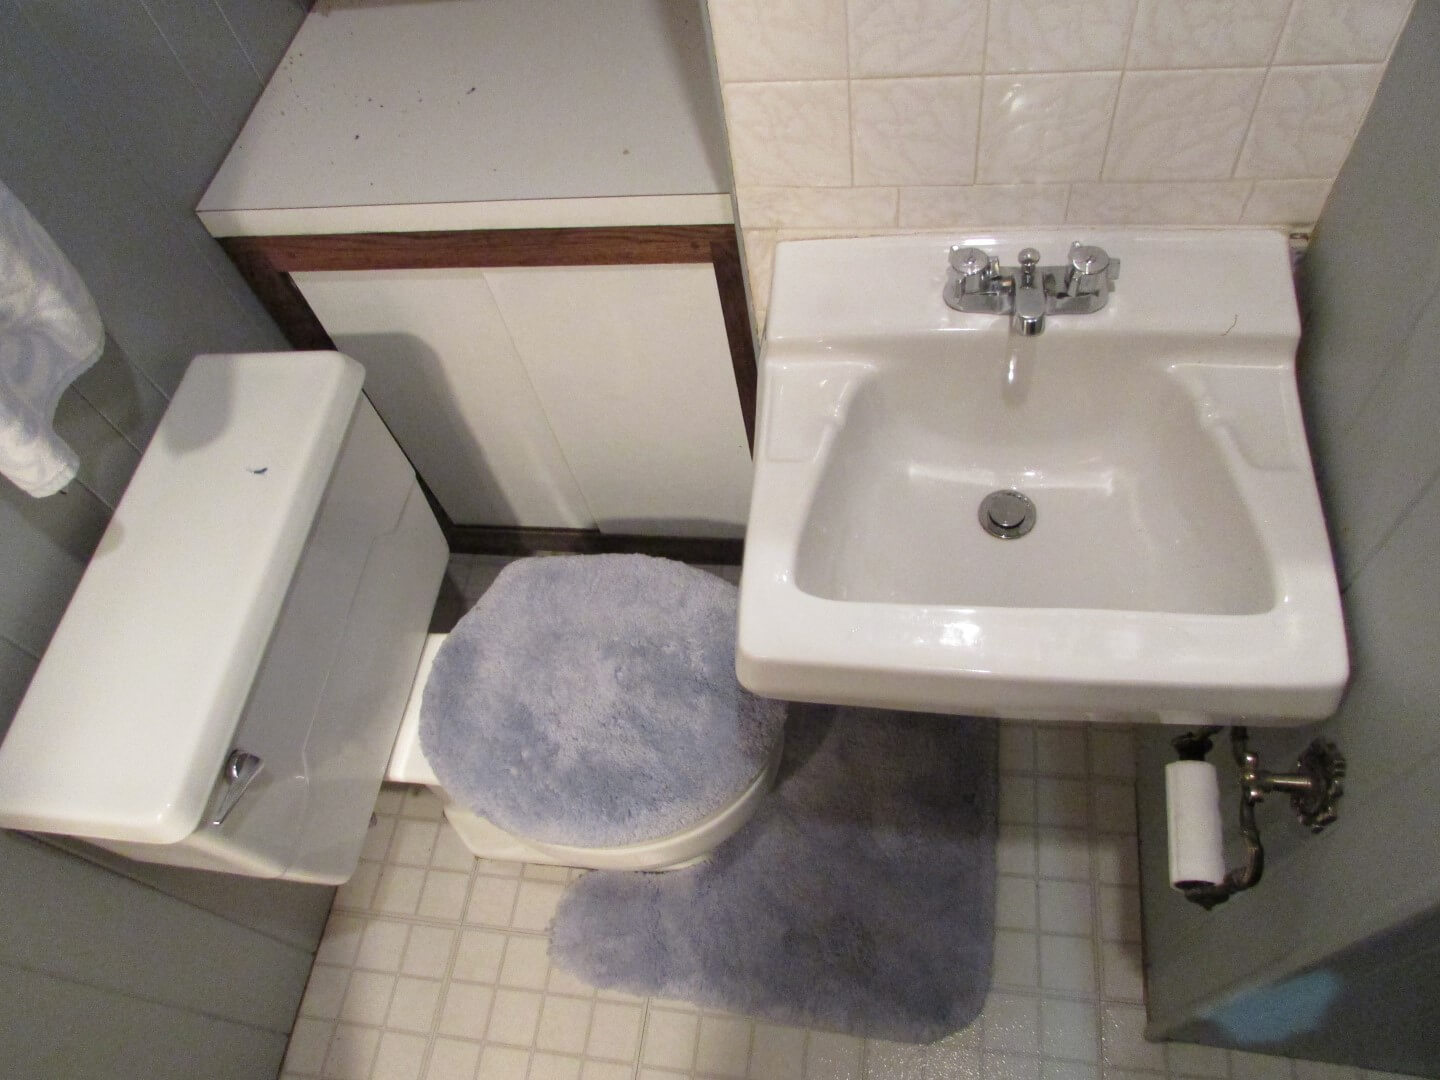 The Best Of The Worst Home Inspection Photos Of 2015 Amen